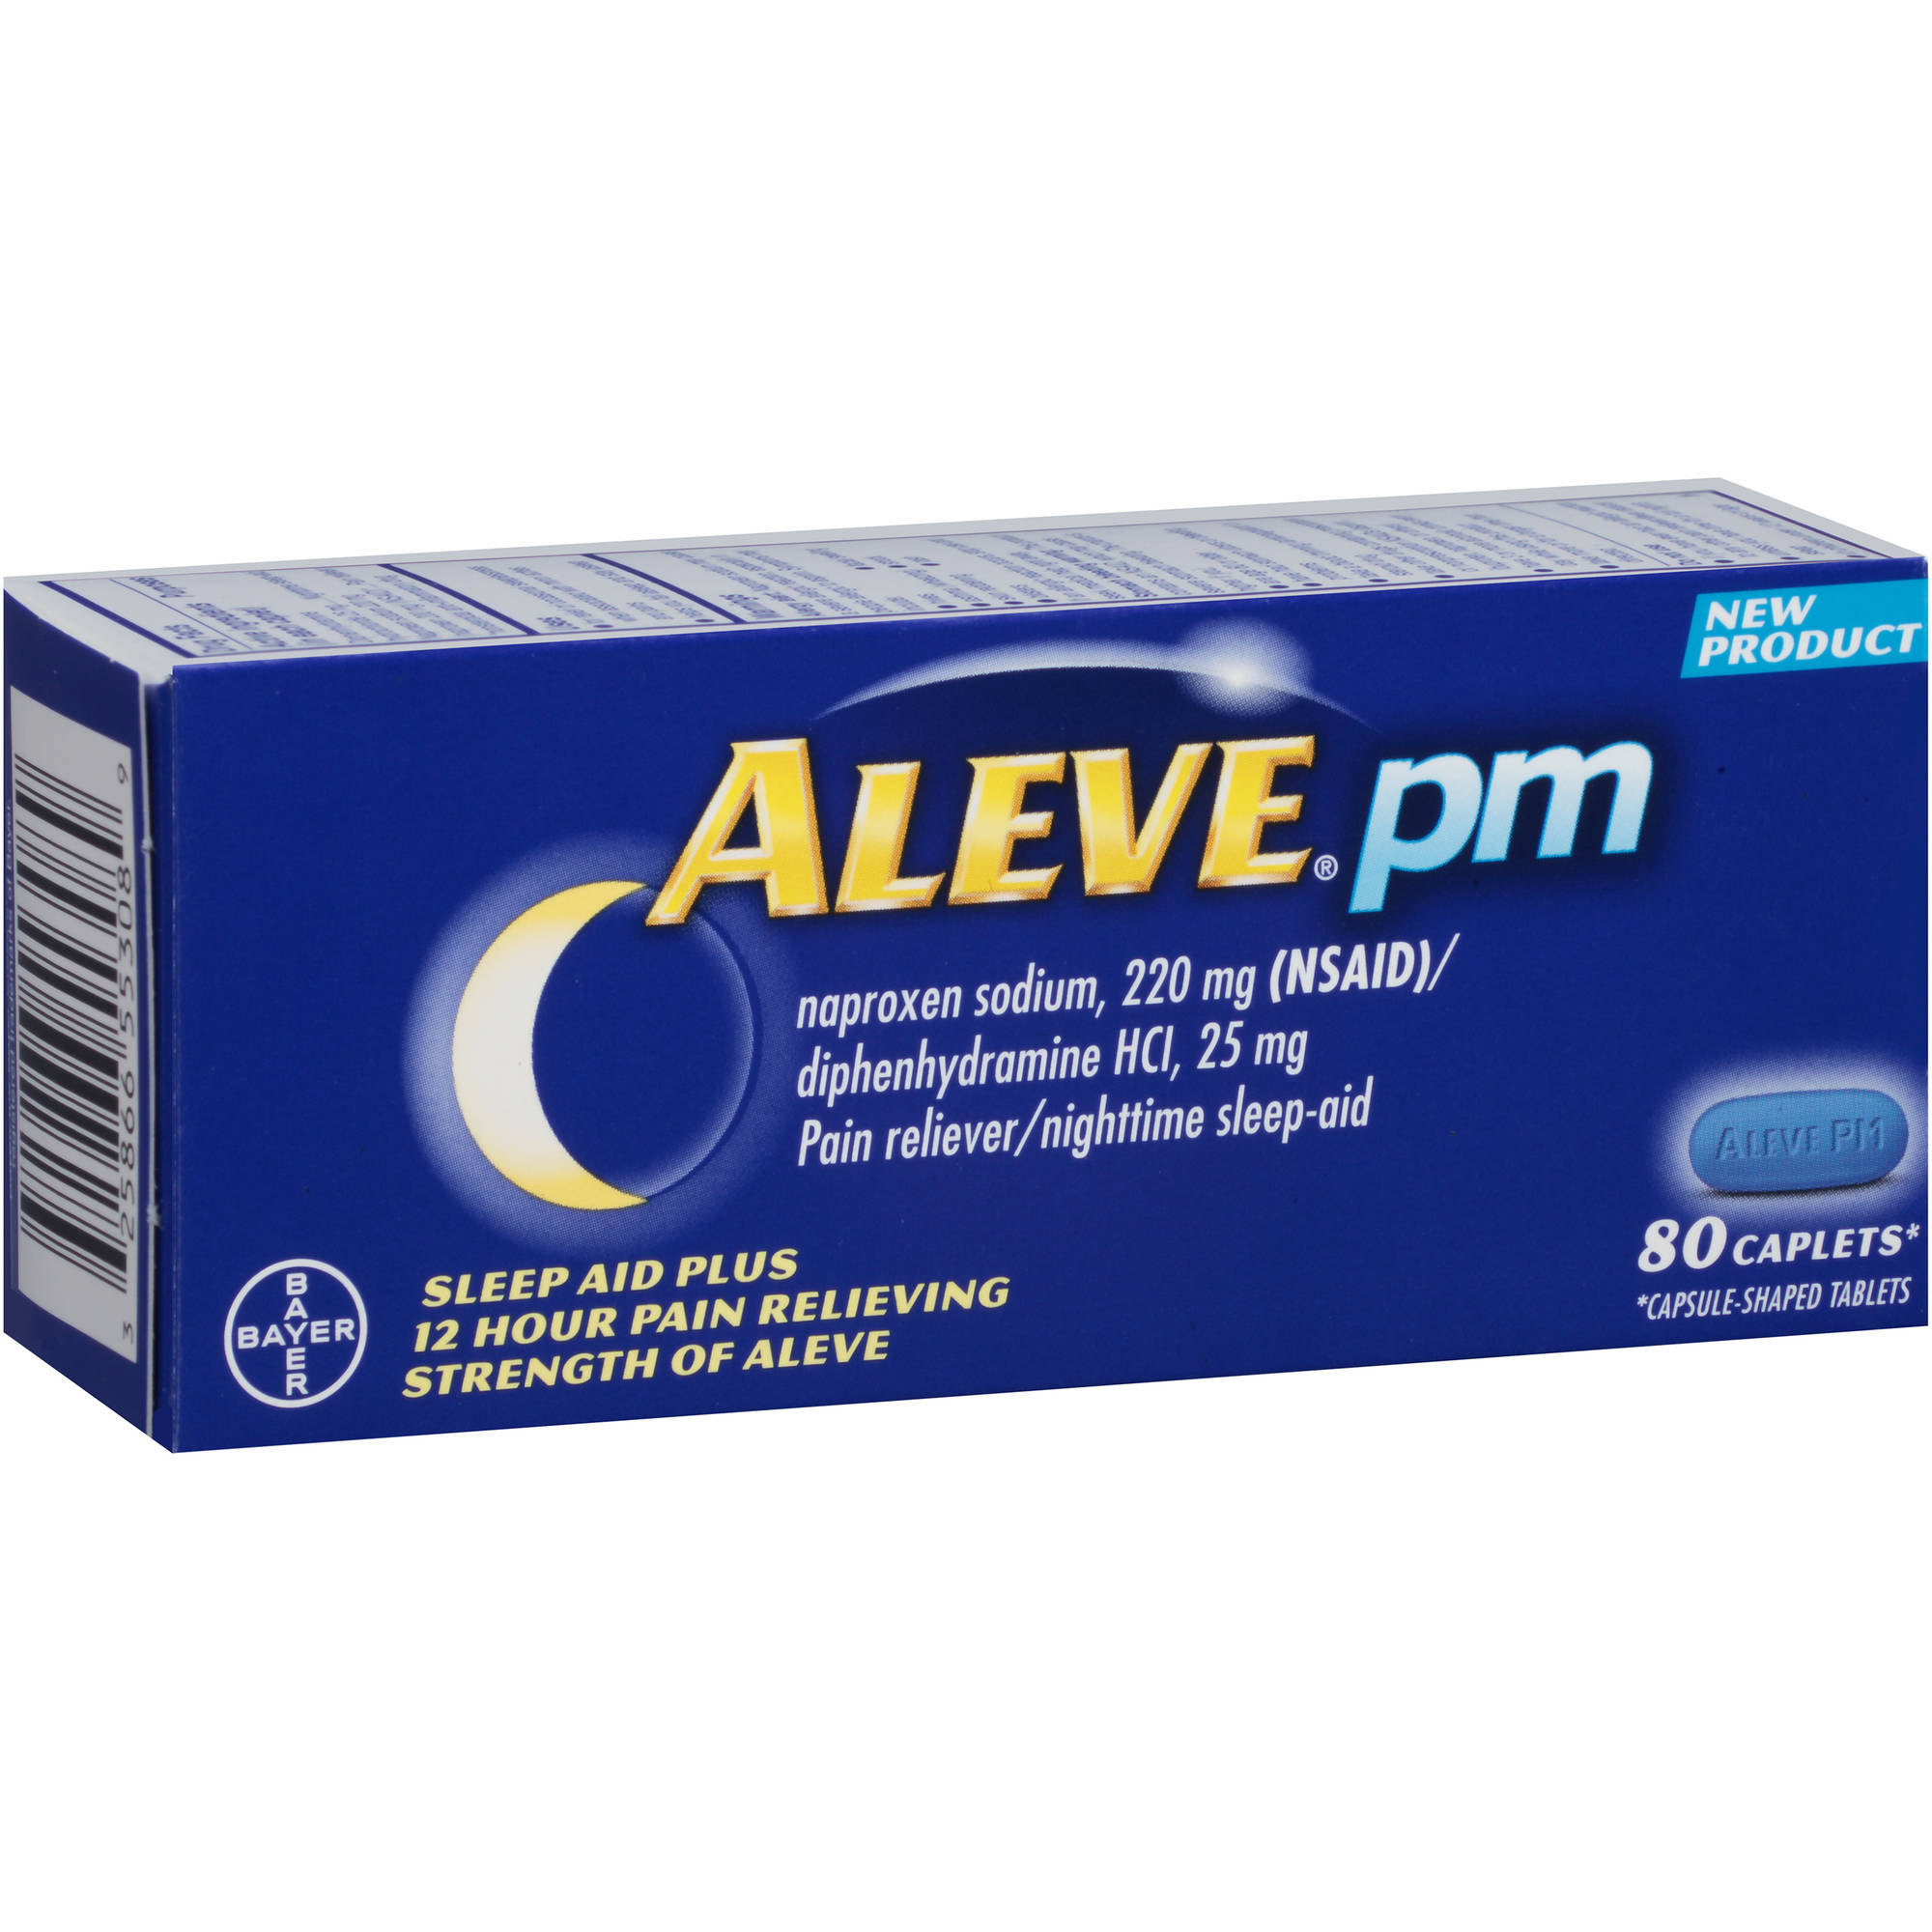 Aleve PM Pain Reliever/Nighttime Sleep-Aid Caplets, 80 count